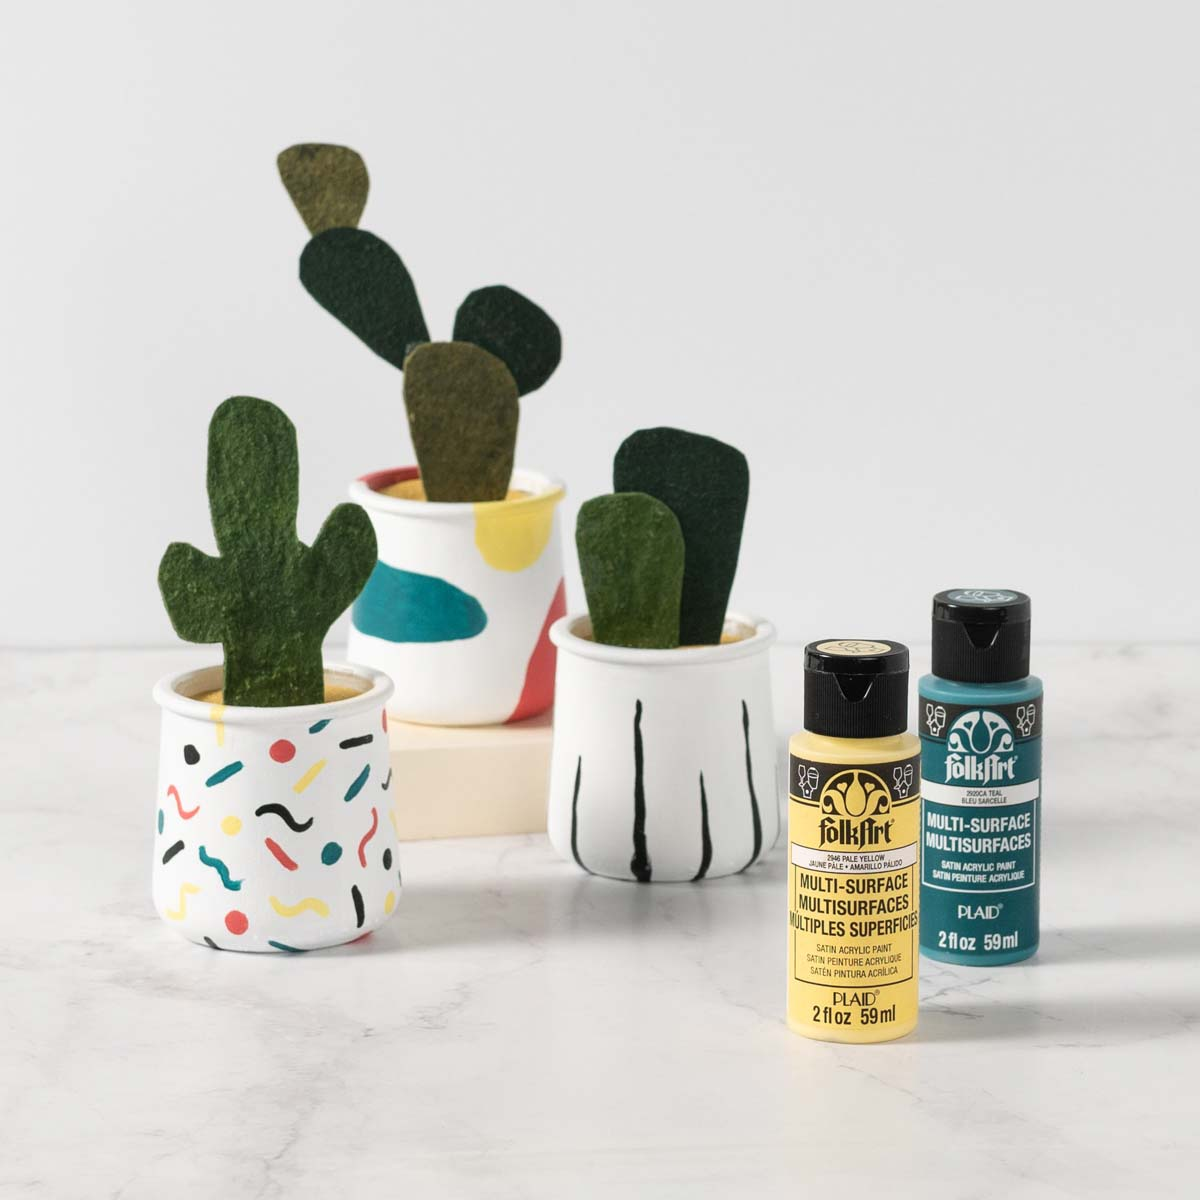 DIY Planters from Upcycled Yogurt Containers